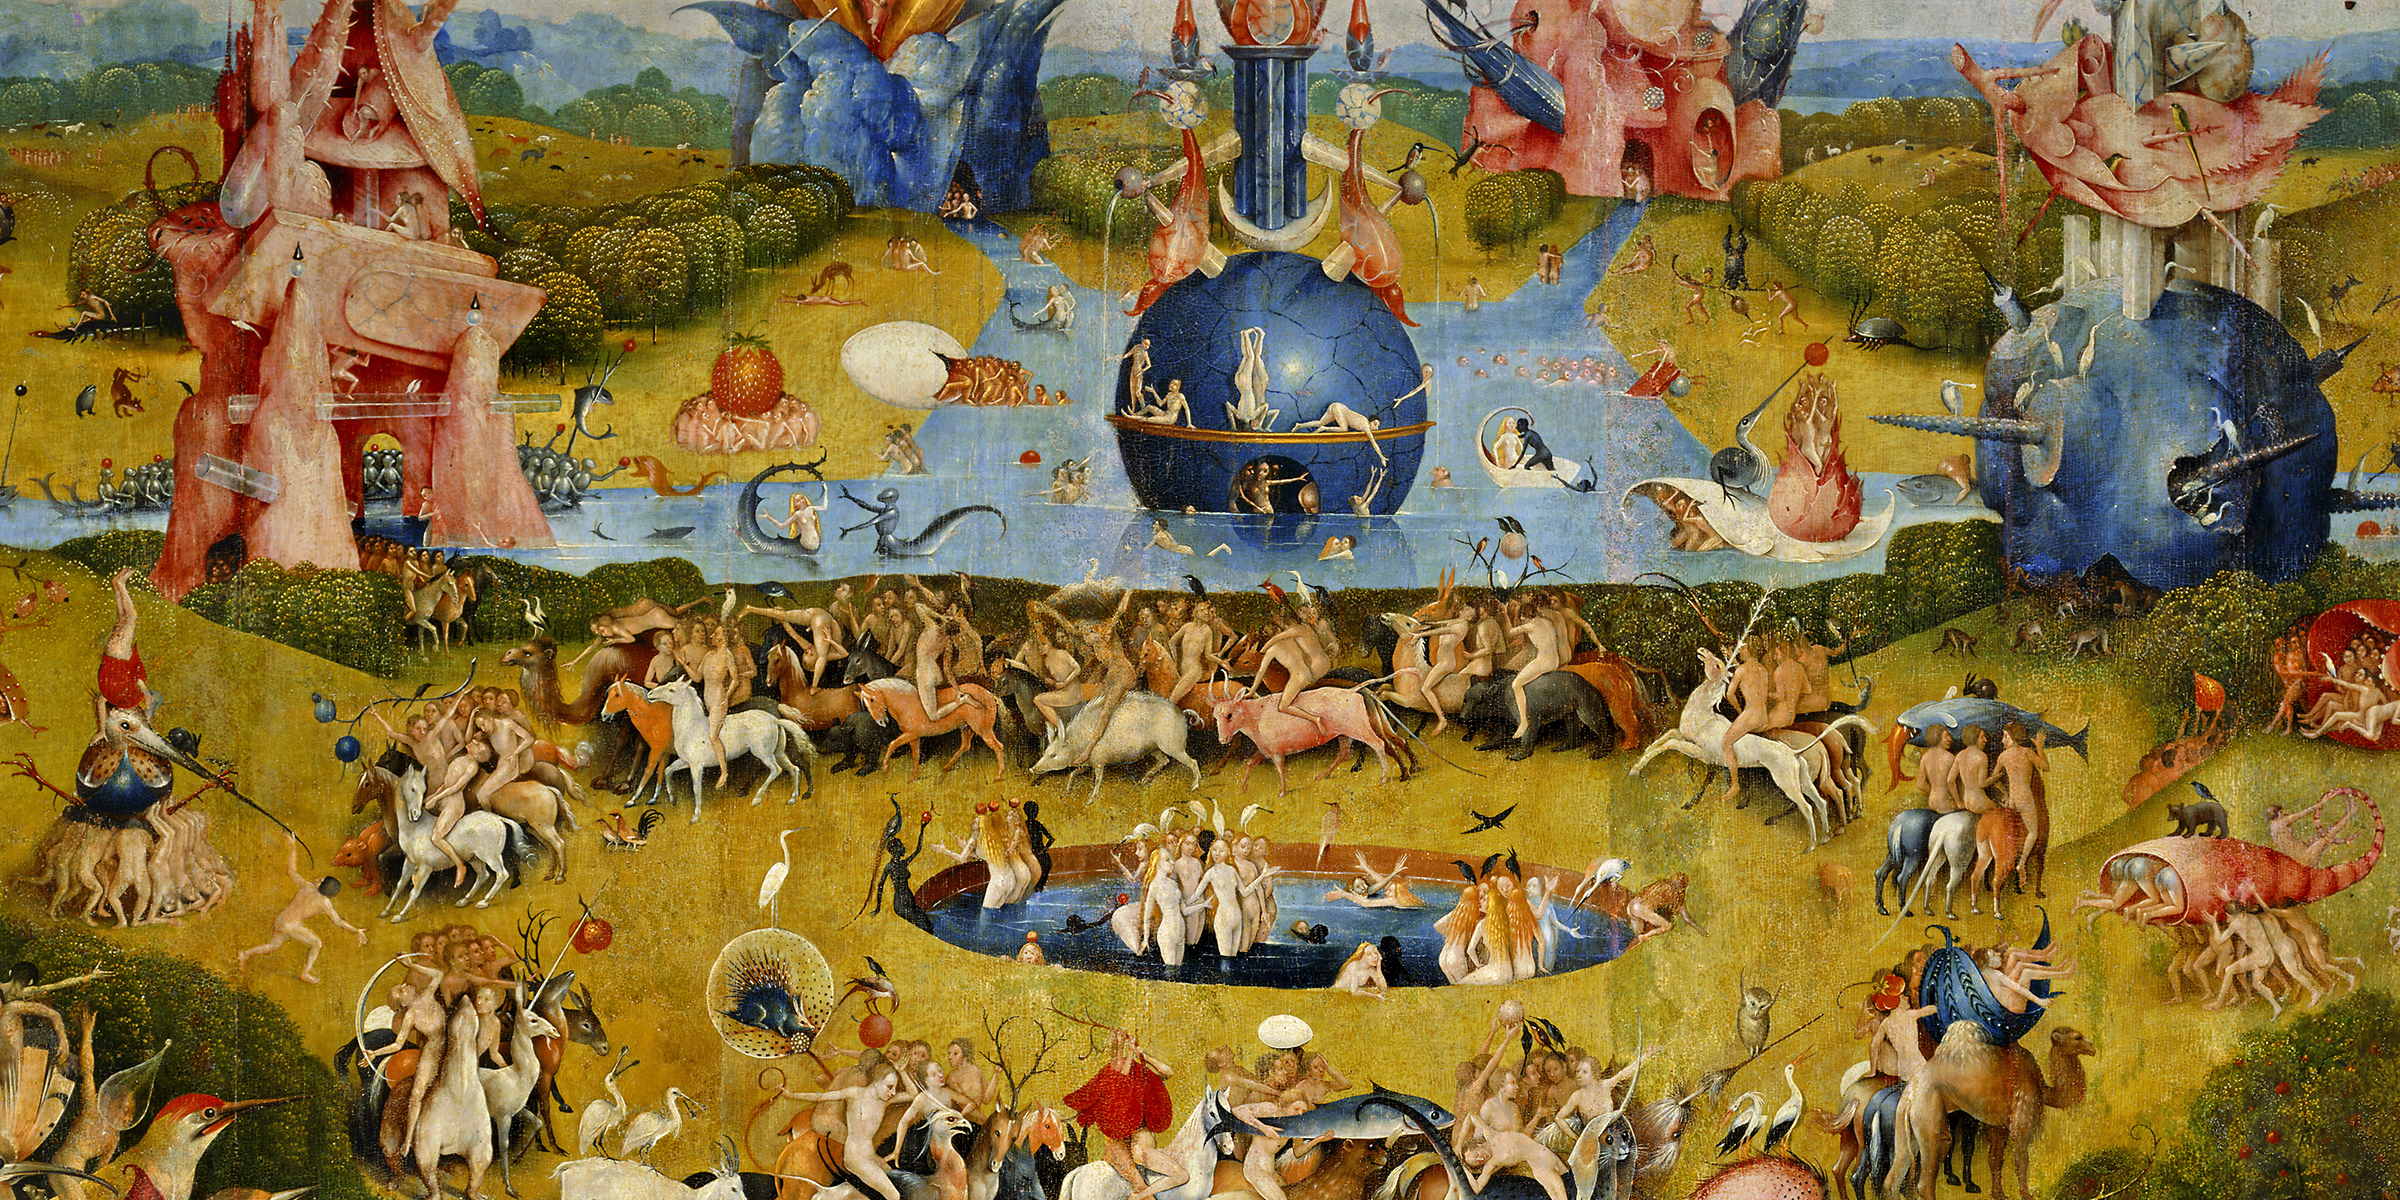 Garden of Earthly Delights (detail), by Hieronymus Bosch, c. 1500. © Erich Lessing/Art Resource, NY.